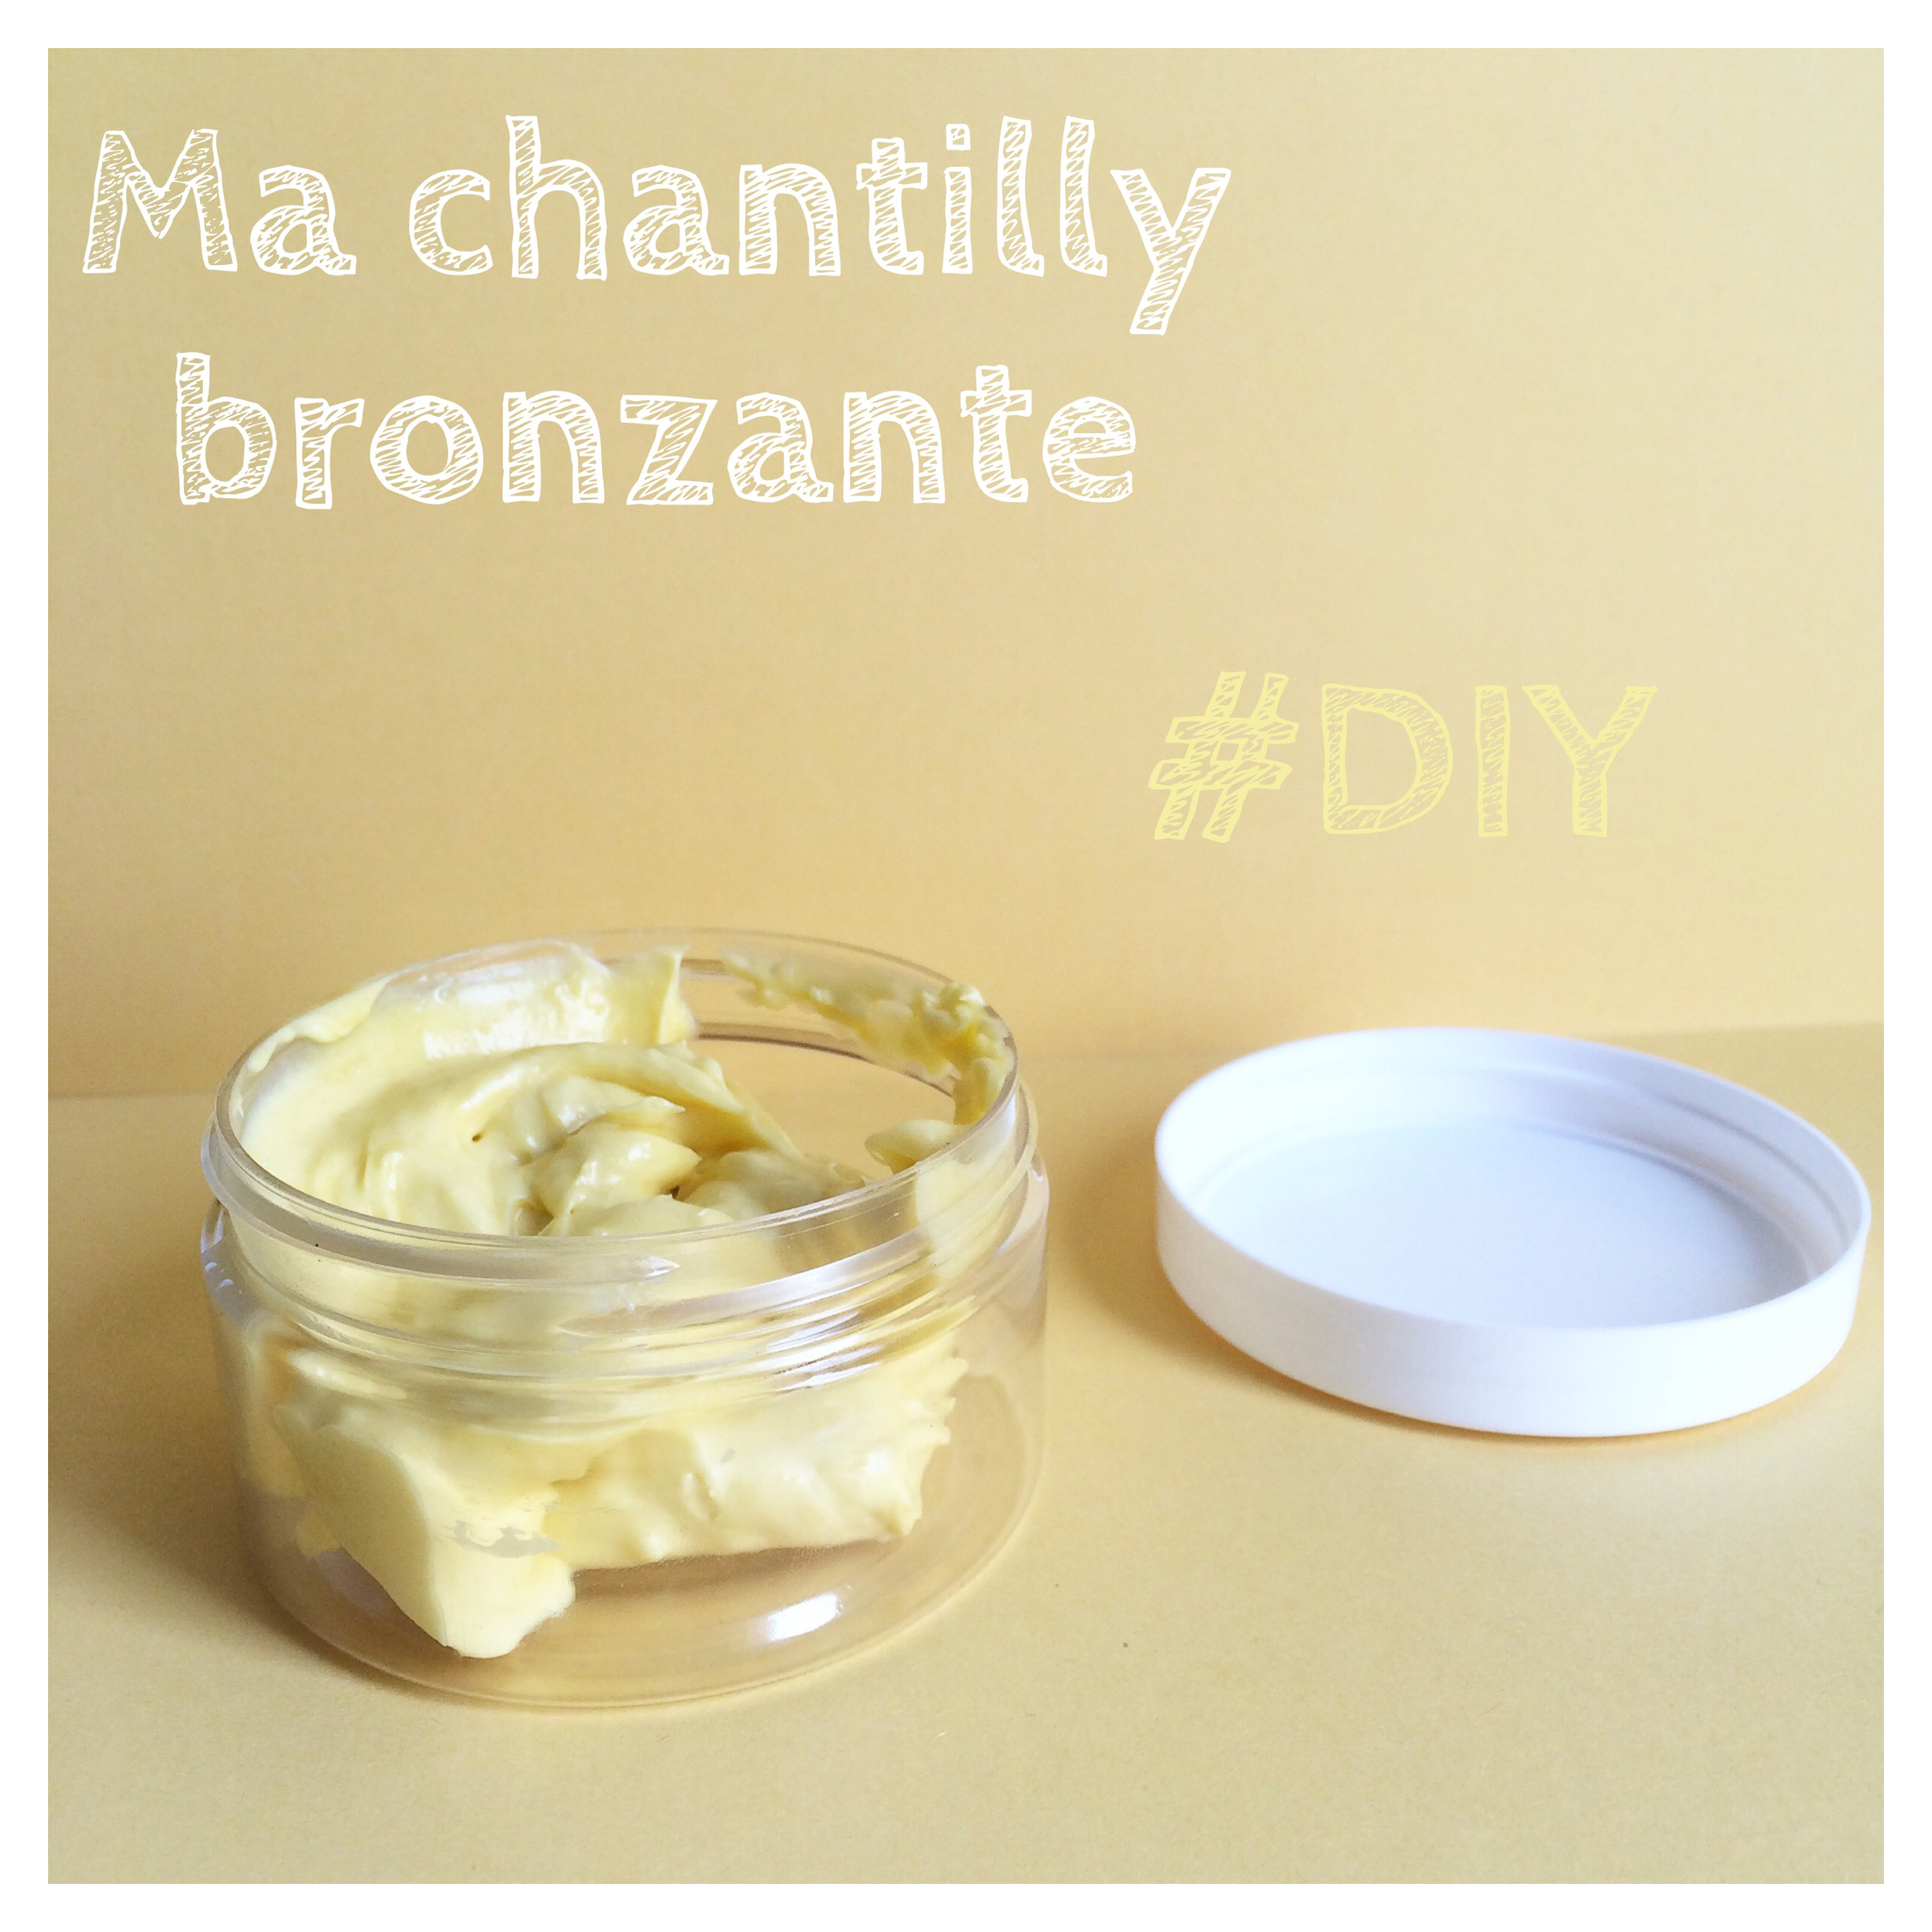 Ma chantilly bronzante #DIY